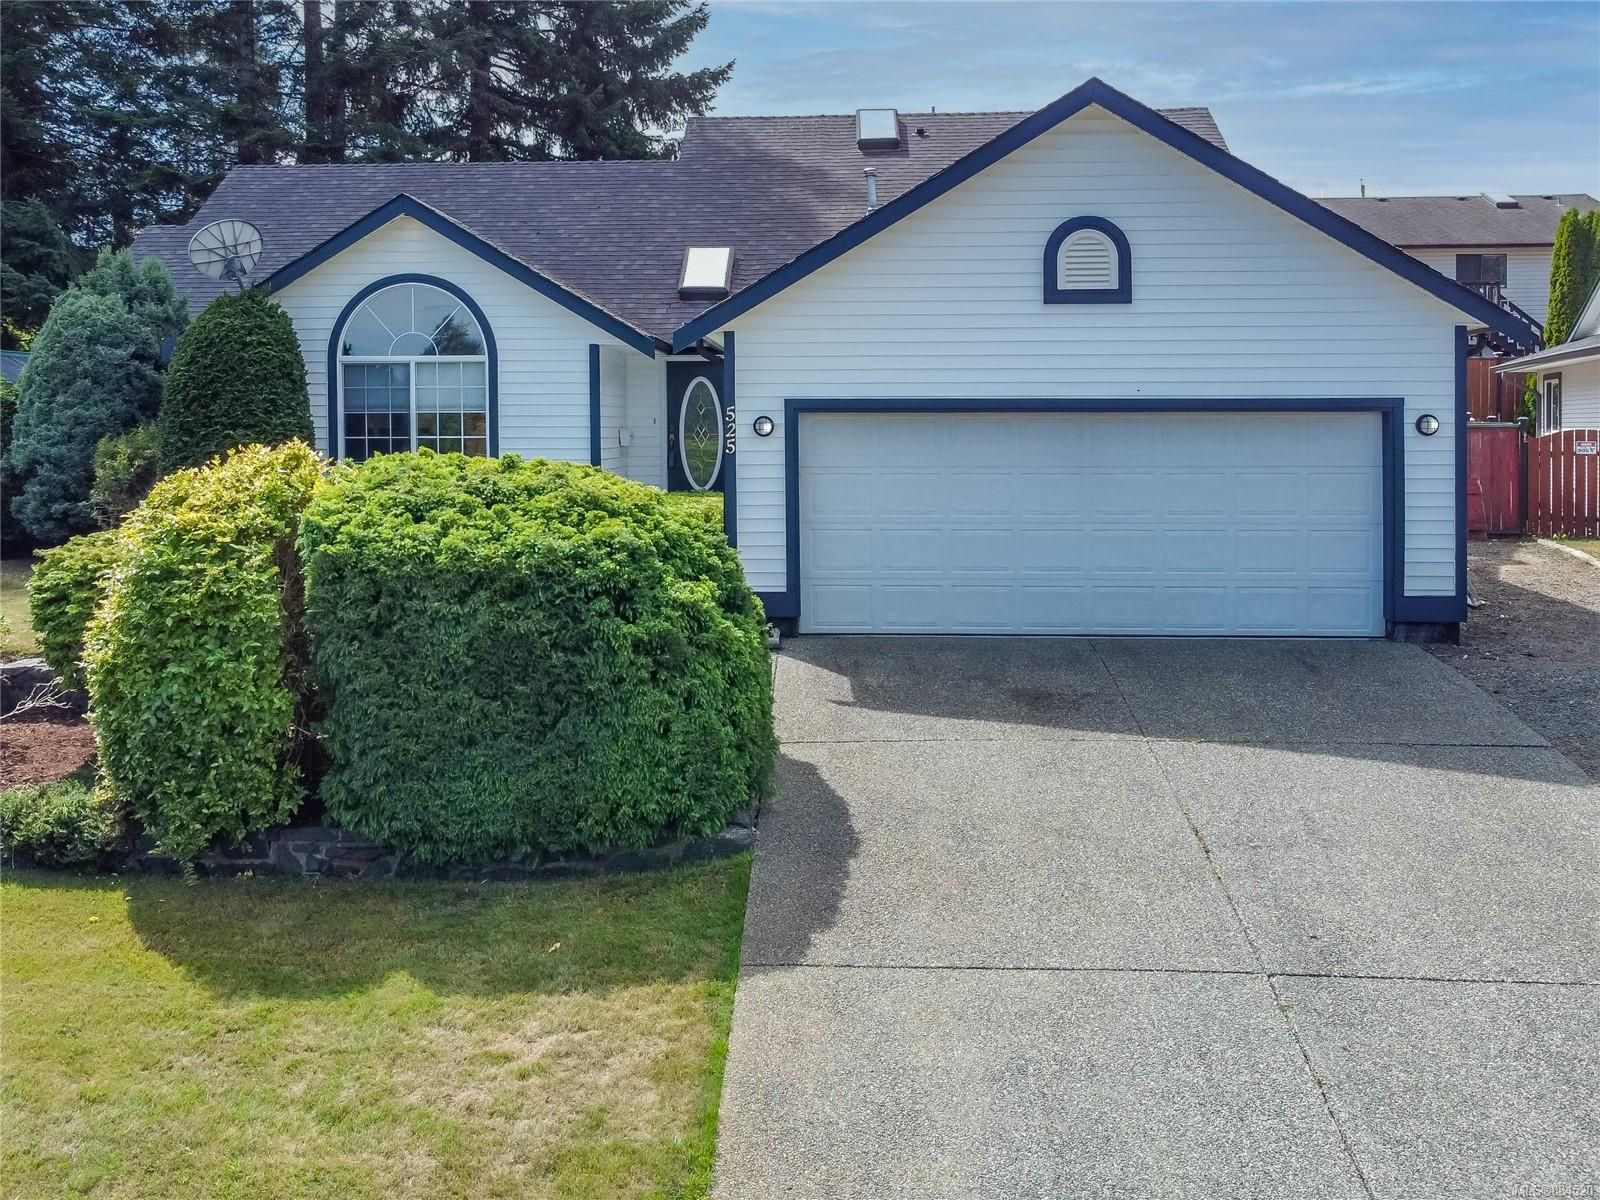 Main Photo: 525 Cove Pl in : CR Willow Point House for sale (Campbell River)  : MLS®# 884520